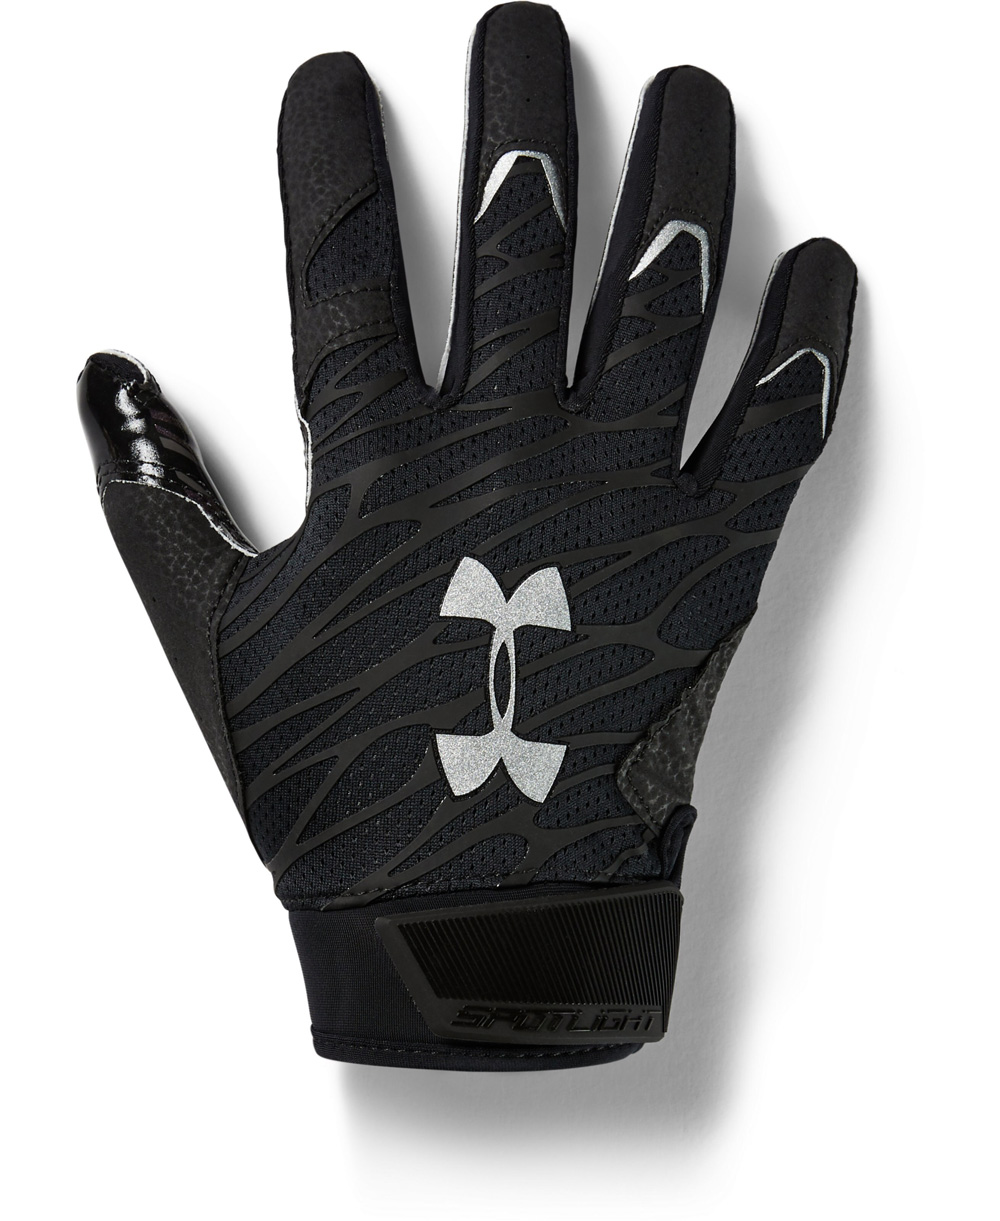 UA Spotlight Guanti Football Americano Uomo Black